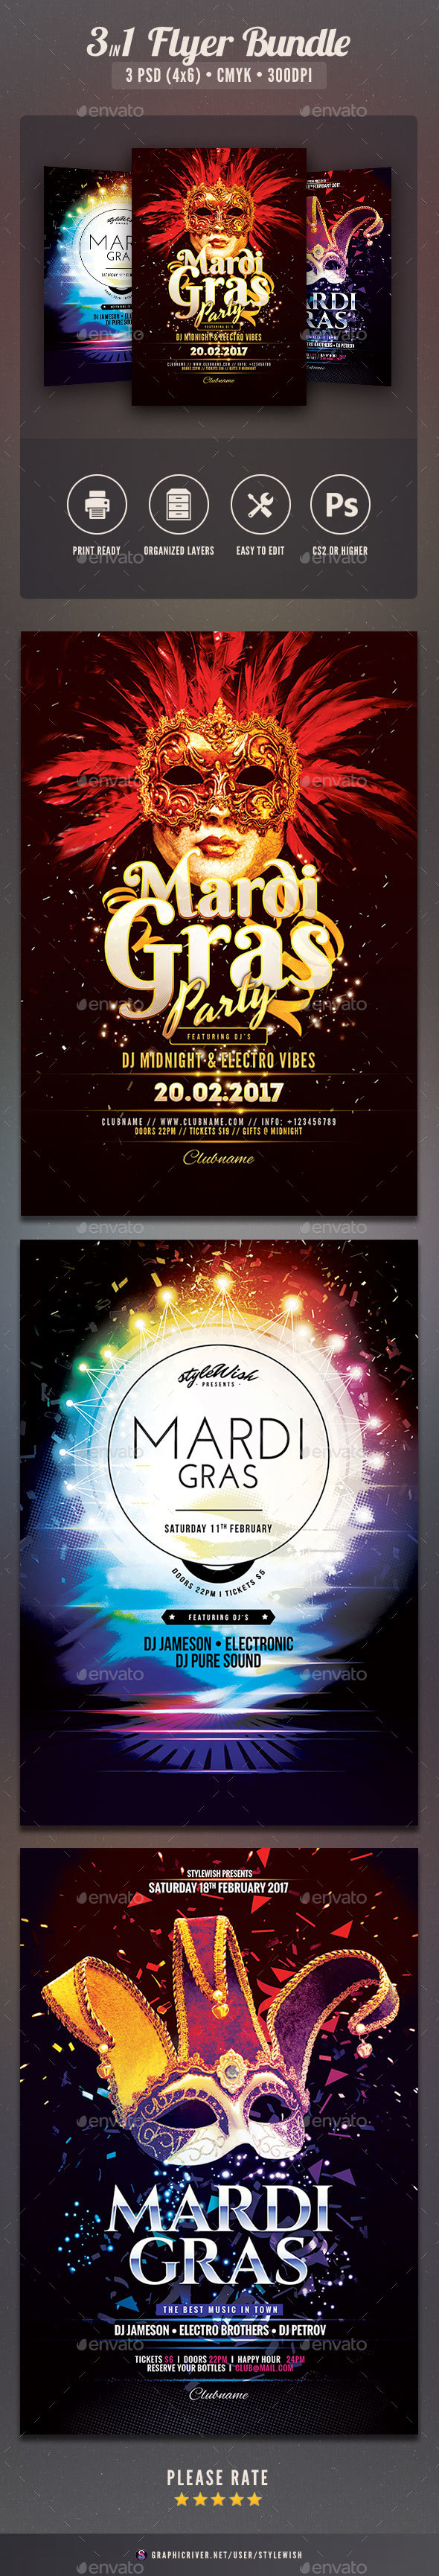 Mardi Gras Flyer Bundle Vol.02 - Clubs & Parties Events